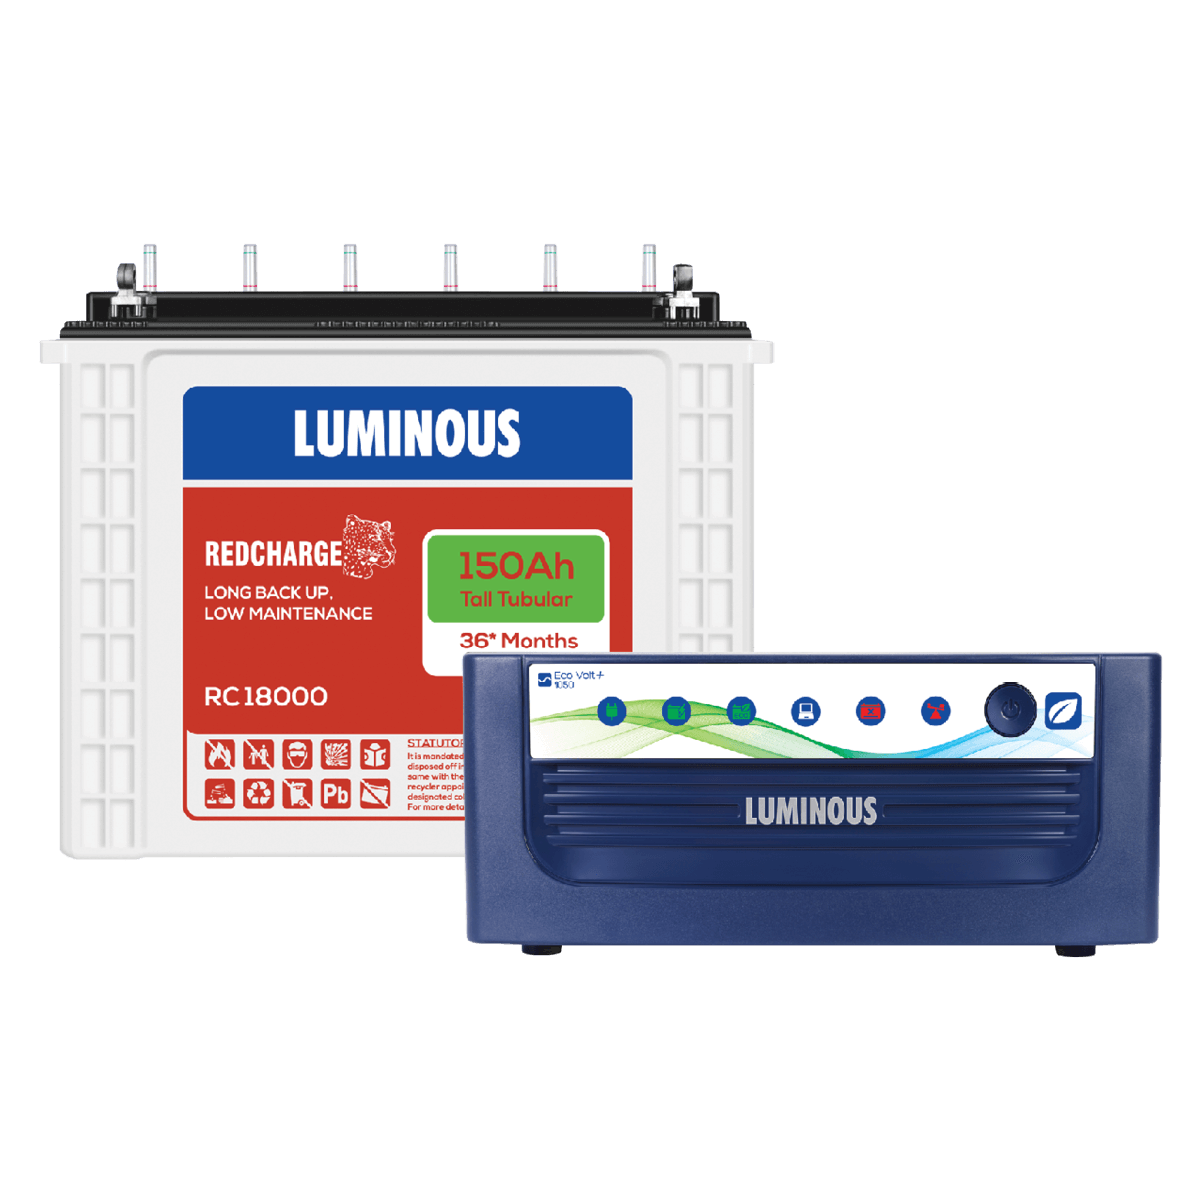 Luminous Inverter 1050 Eco watt Neo With Rc 150ah 18000 Tall Tubular Battery